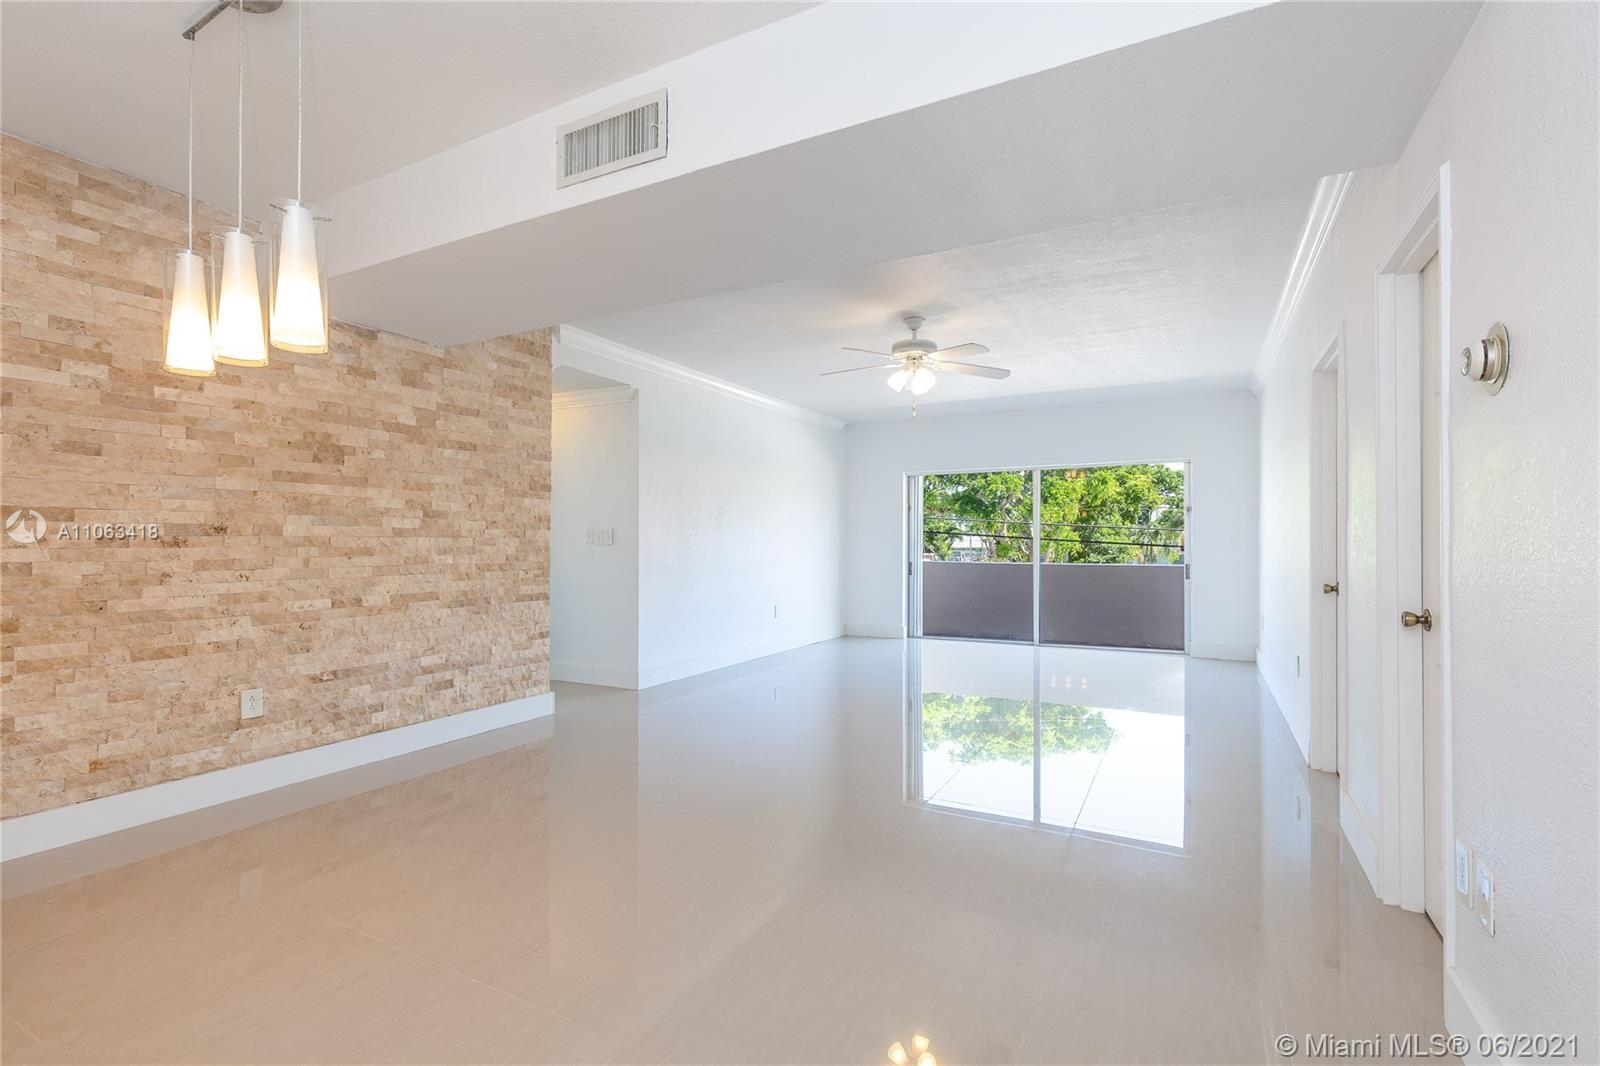 Beautiful and spacious 3 bedroom 2 bathroom remodeled corner unit in a charming, boutique and secure